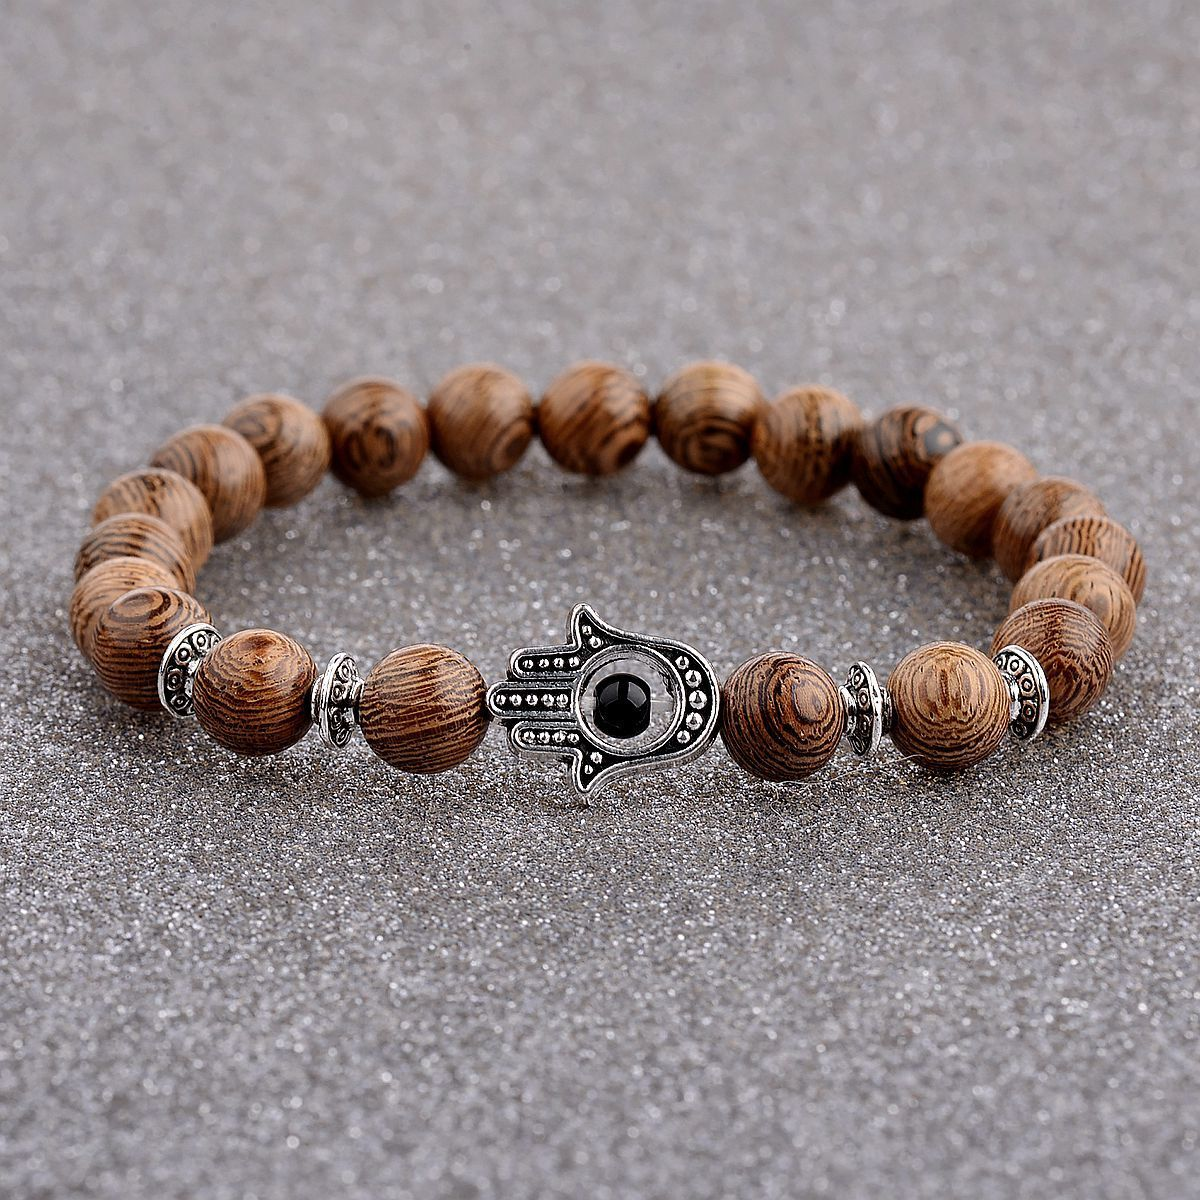 Wooden beads + palm